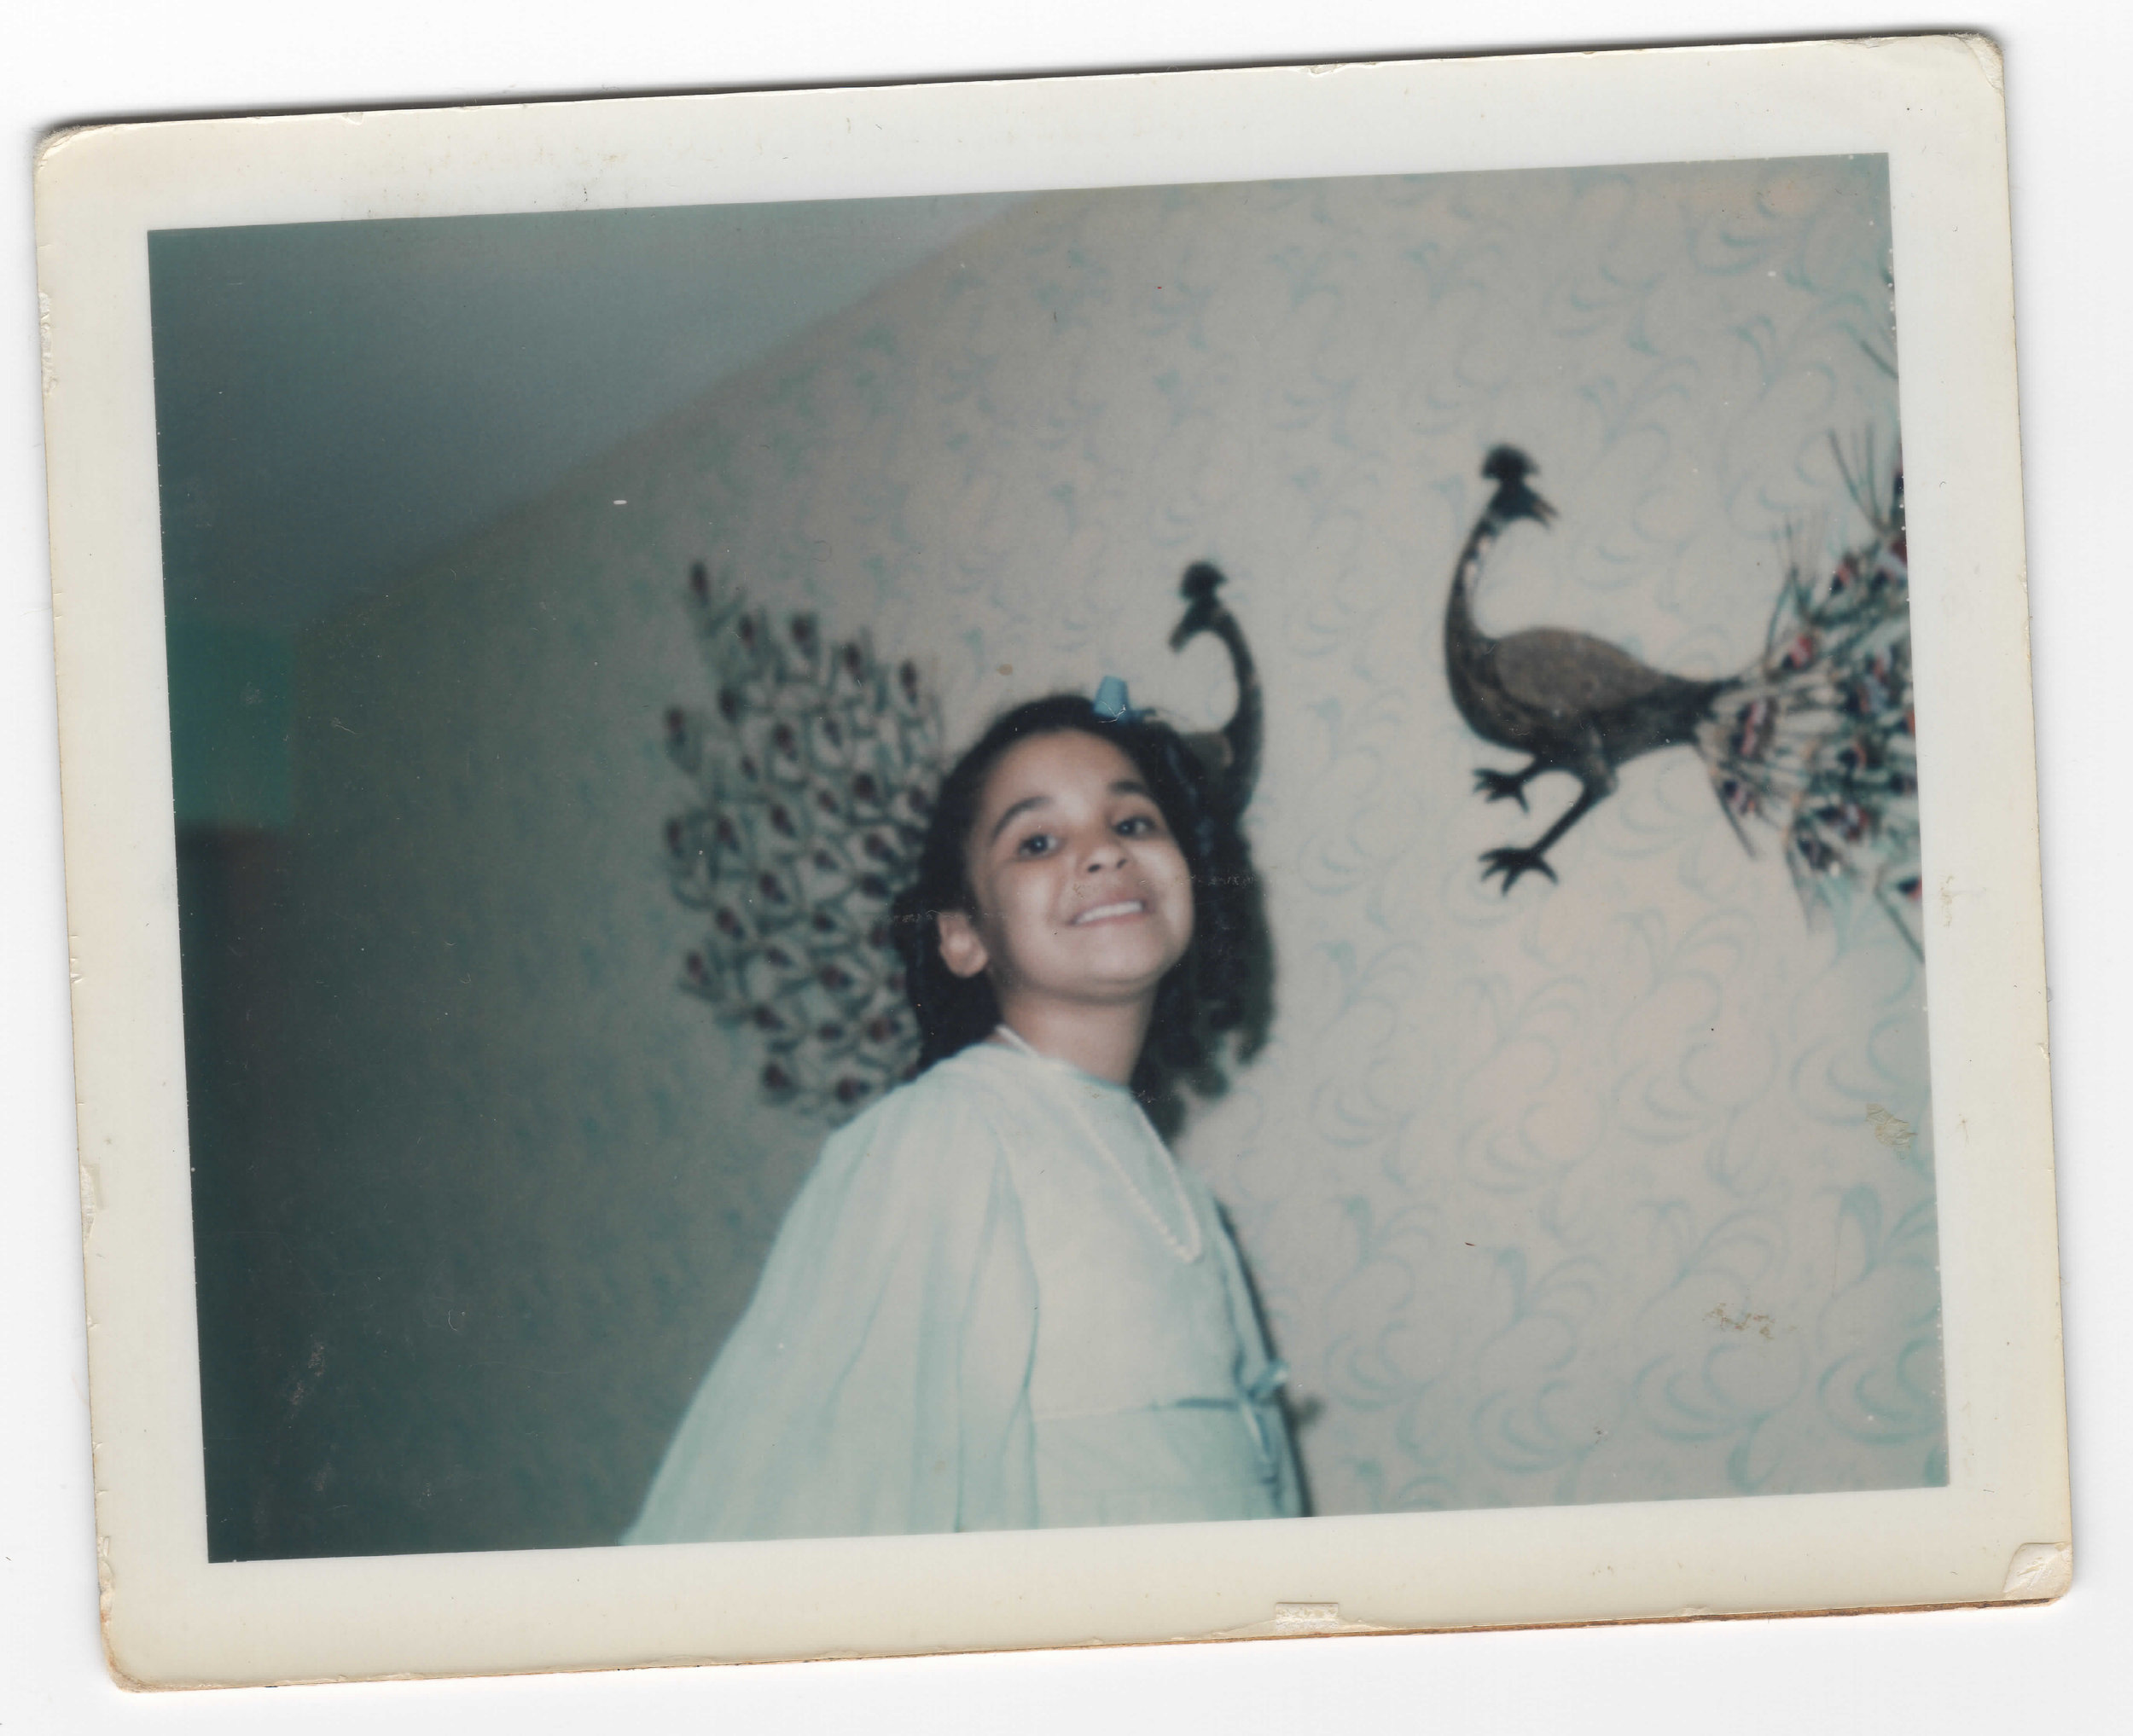 Generation 1:  From Whence I Came II    Childhood photograph of my mother, Veronica Stephanie (circa early 1970s)  4 x 6 in